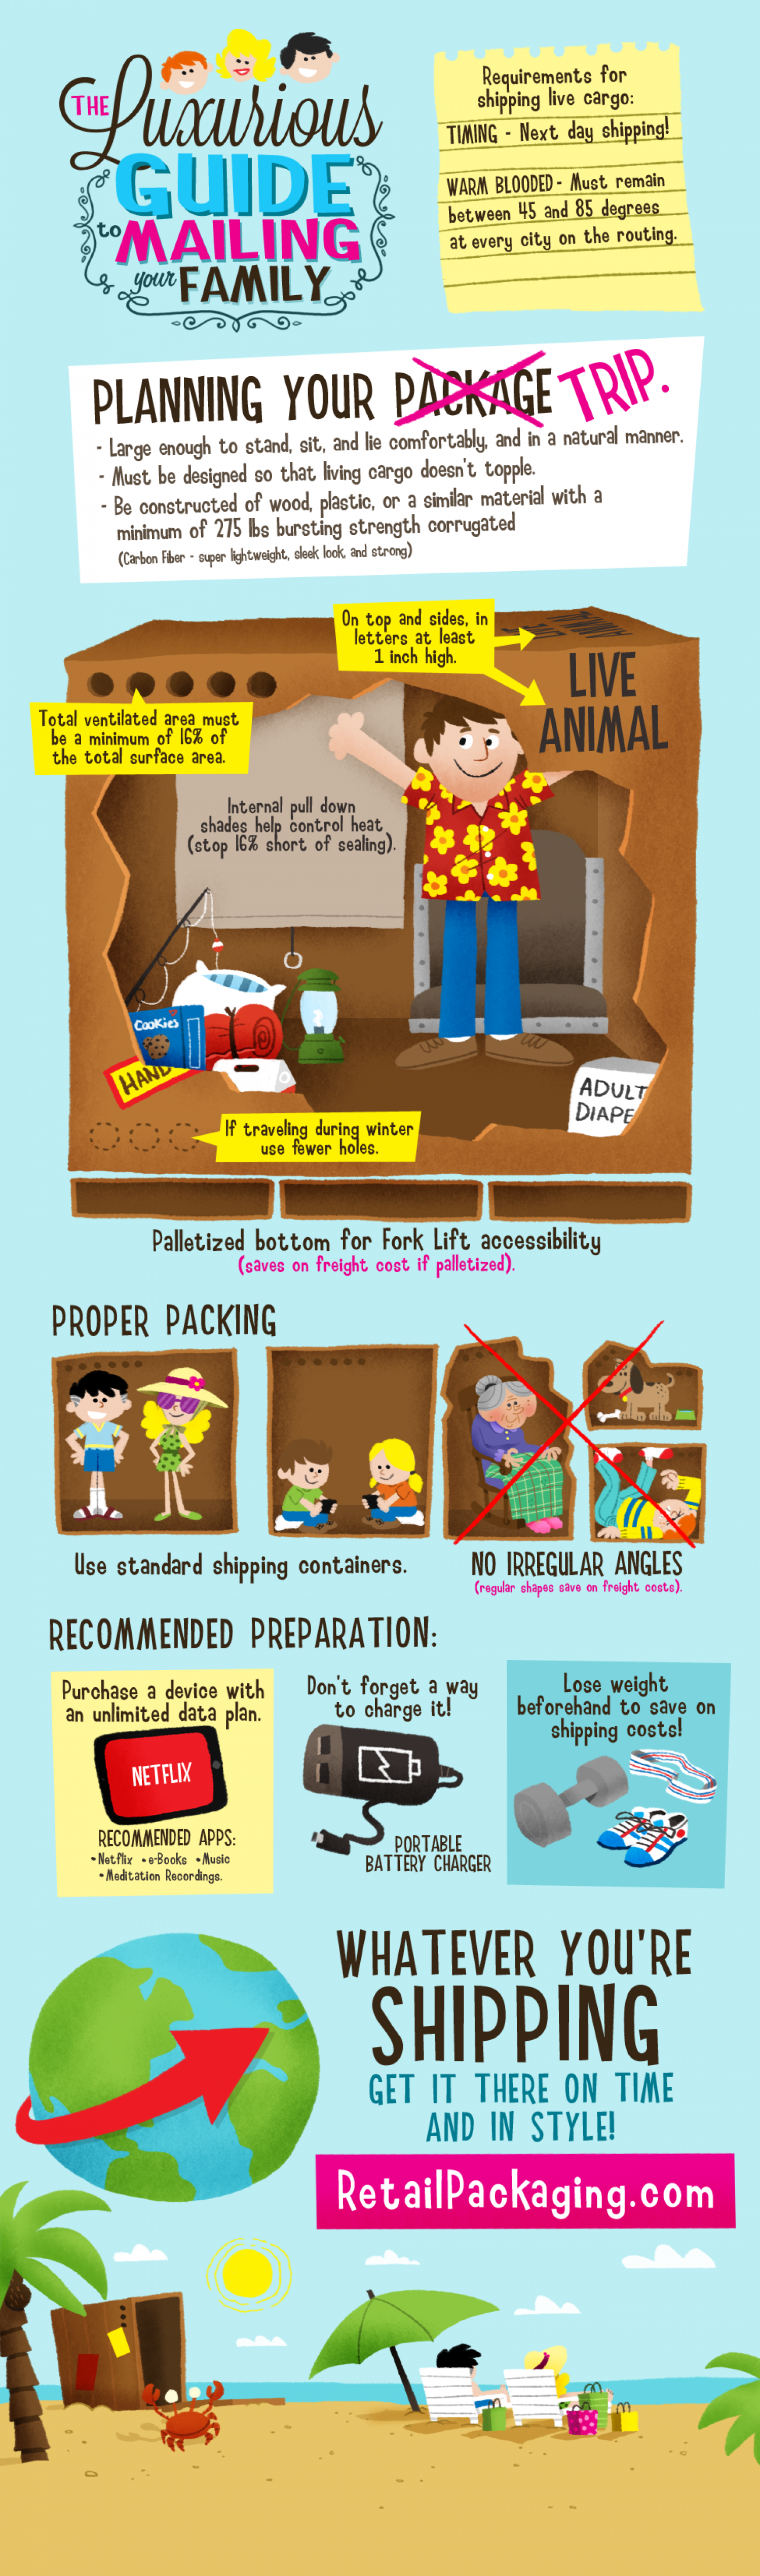 The Luxurious Guide to Mailing Your Family Infographic